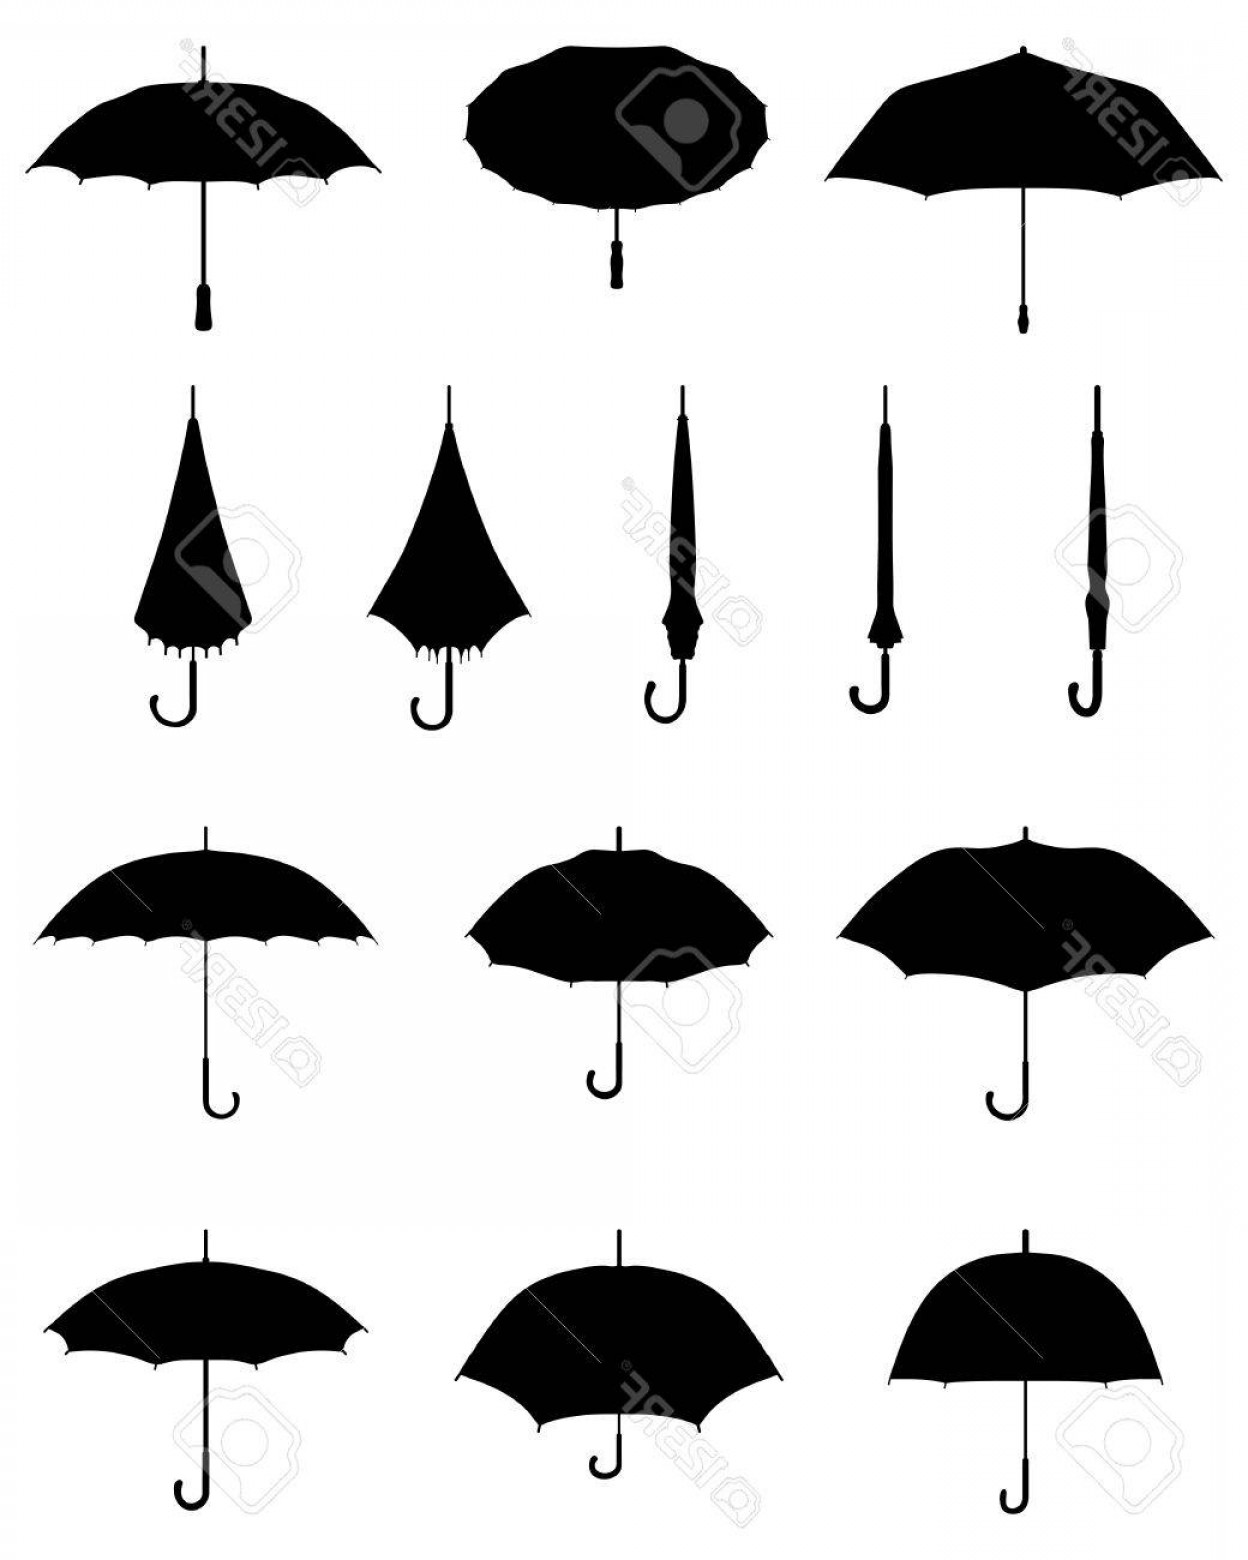 Umbrella Vector Black: Photostock Vector Black Silhouettes Of Open And Closed Umbrellas Vector